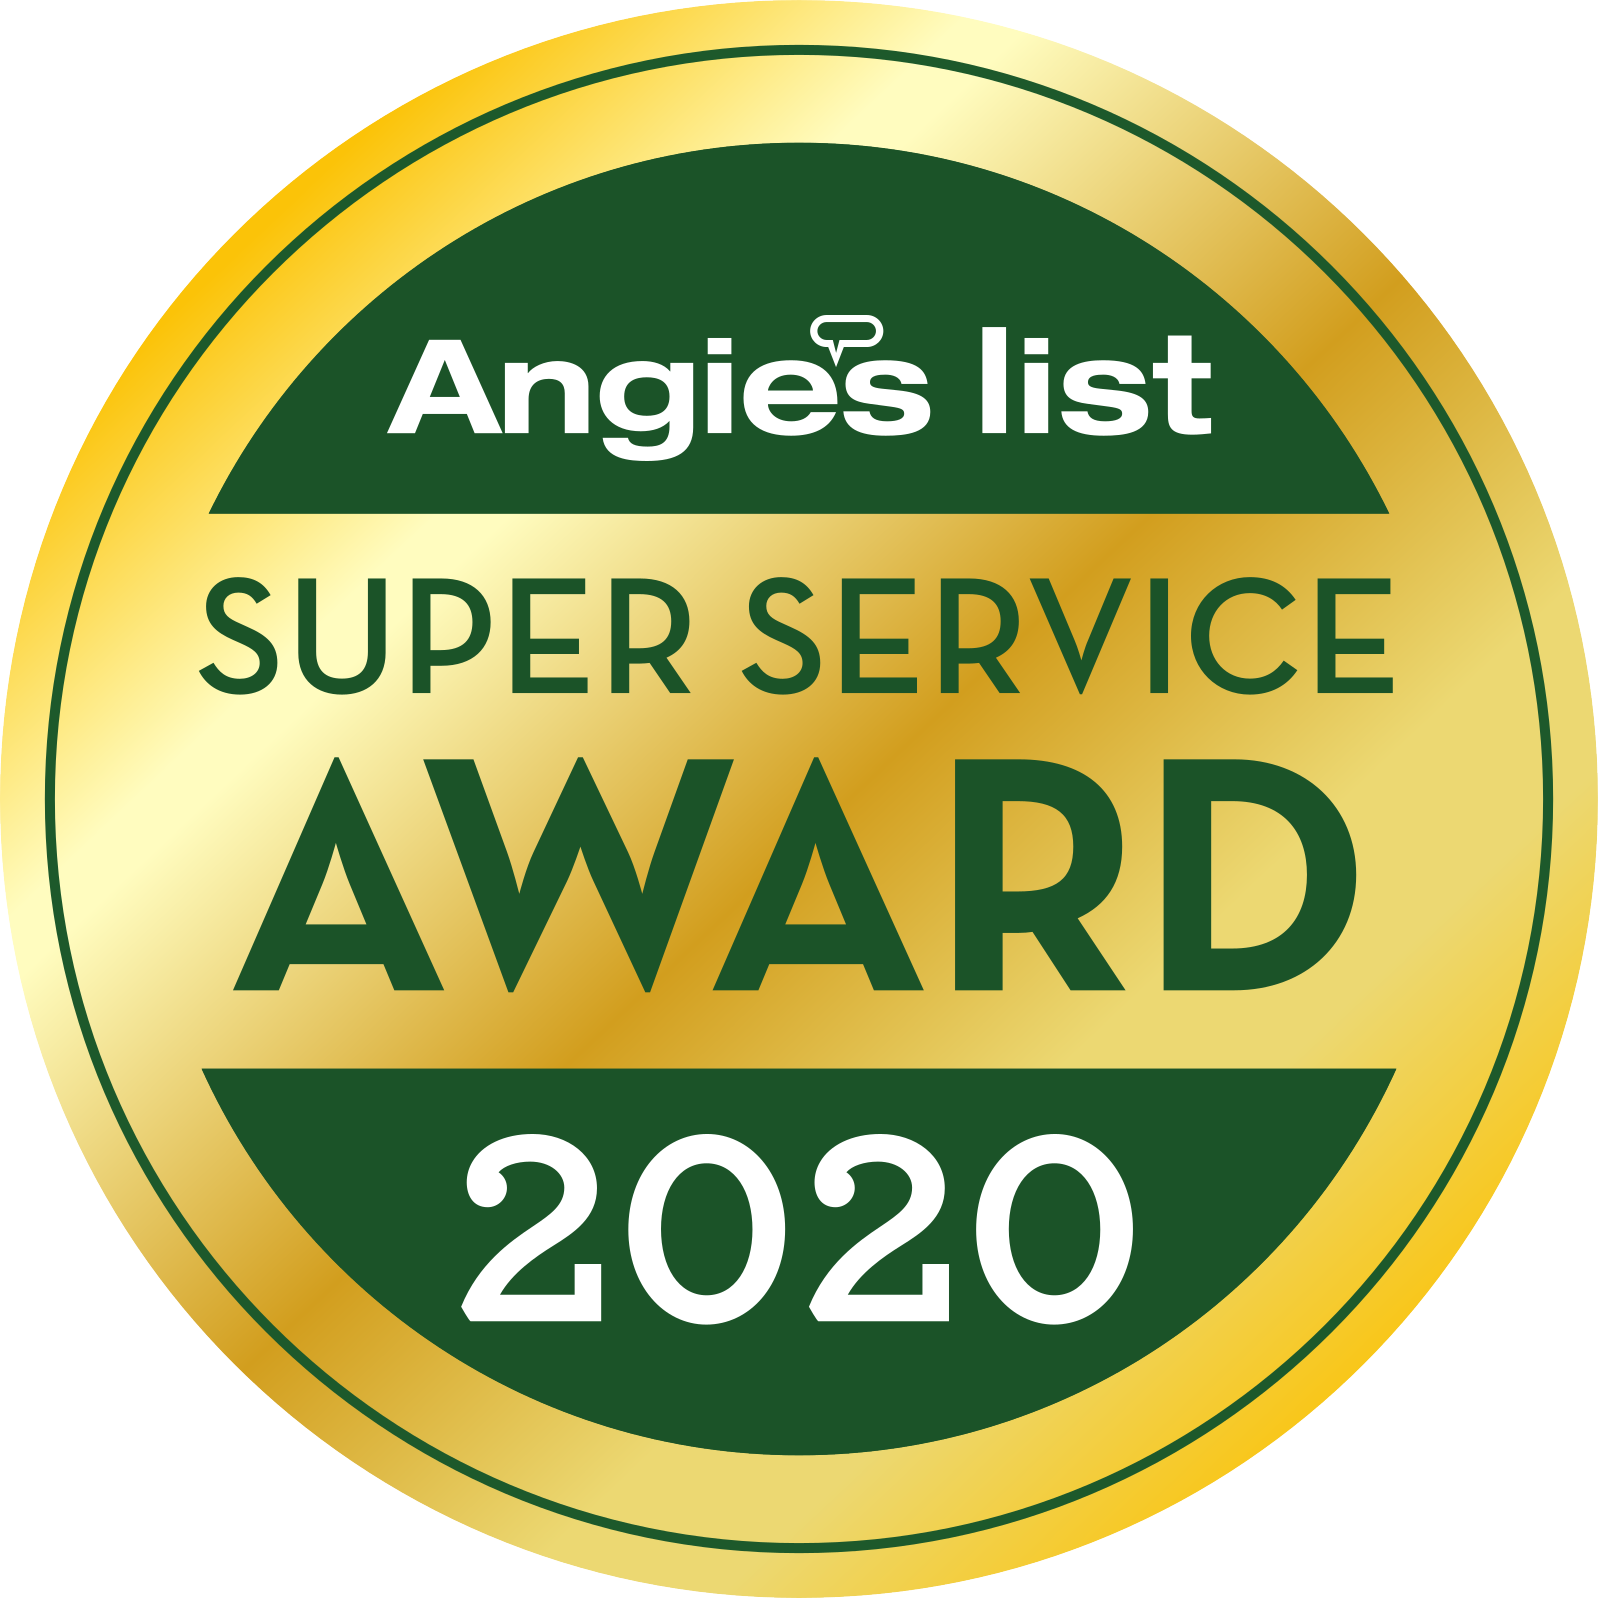 Angie's List - Super Service Award - 2020